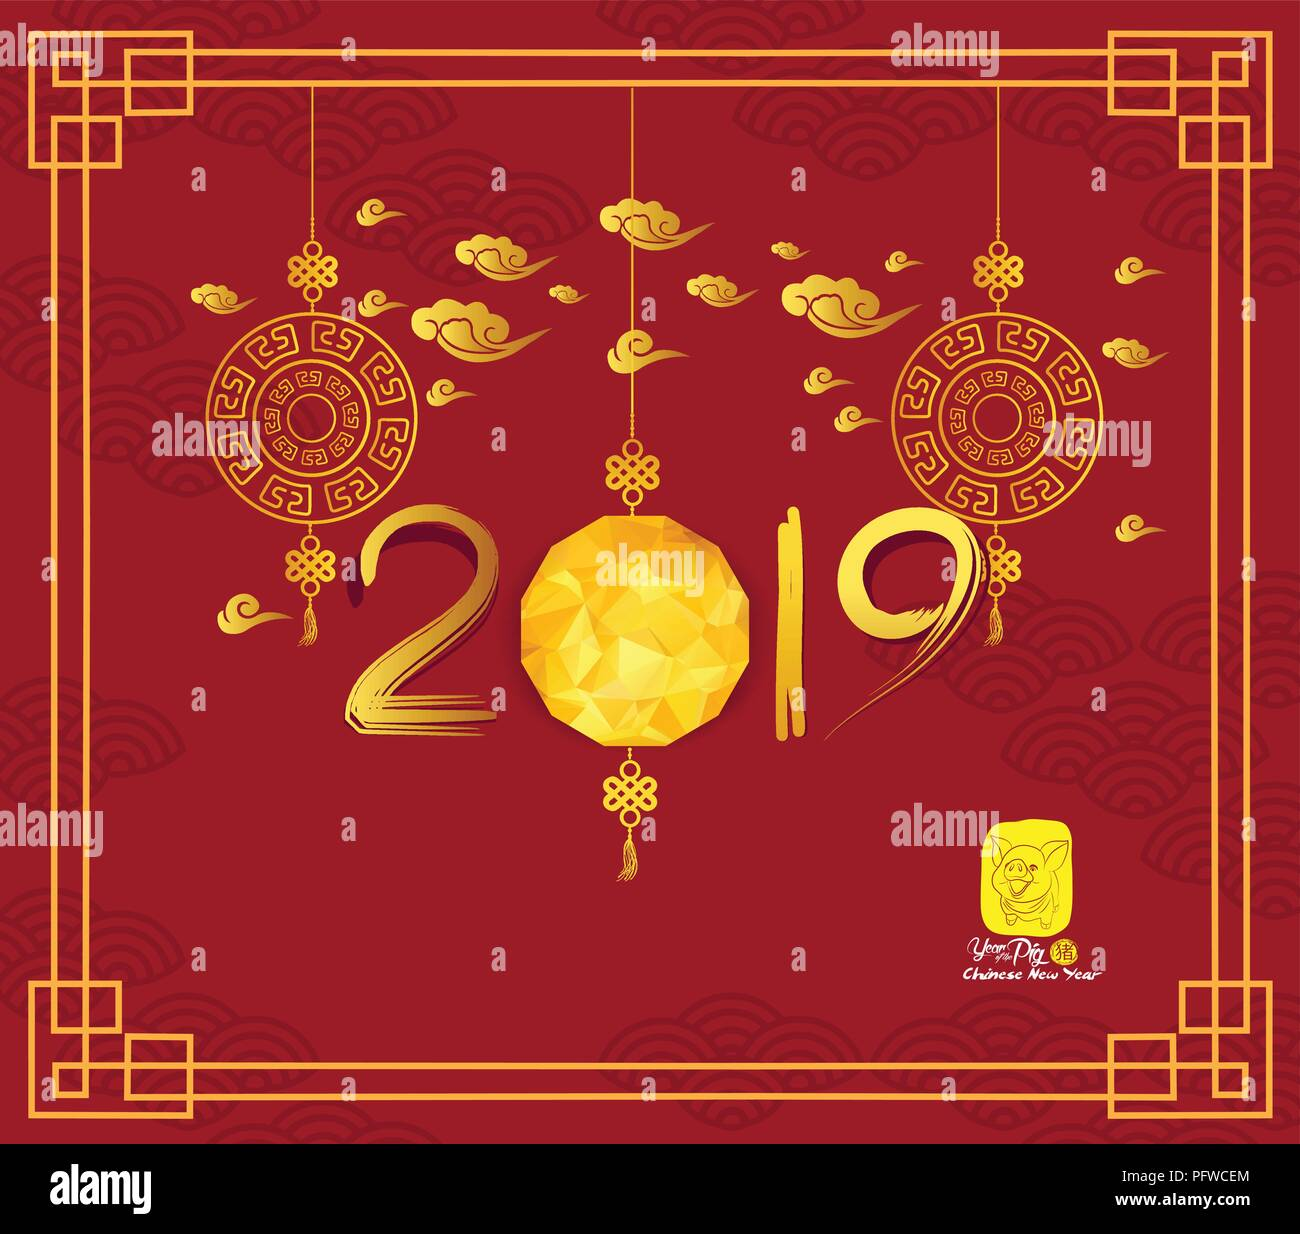 Happy Chinese New Year 2019 Card With Pig And Lantern Year Of The